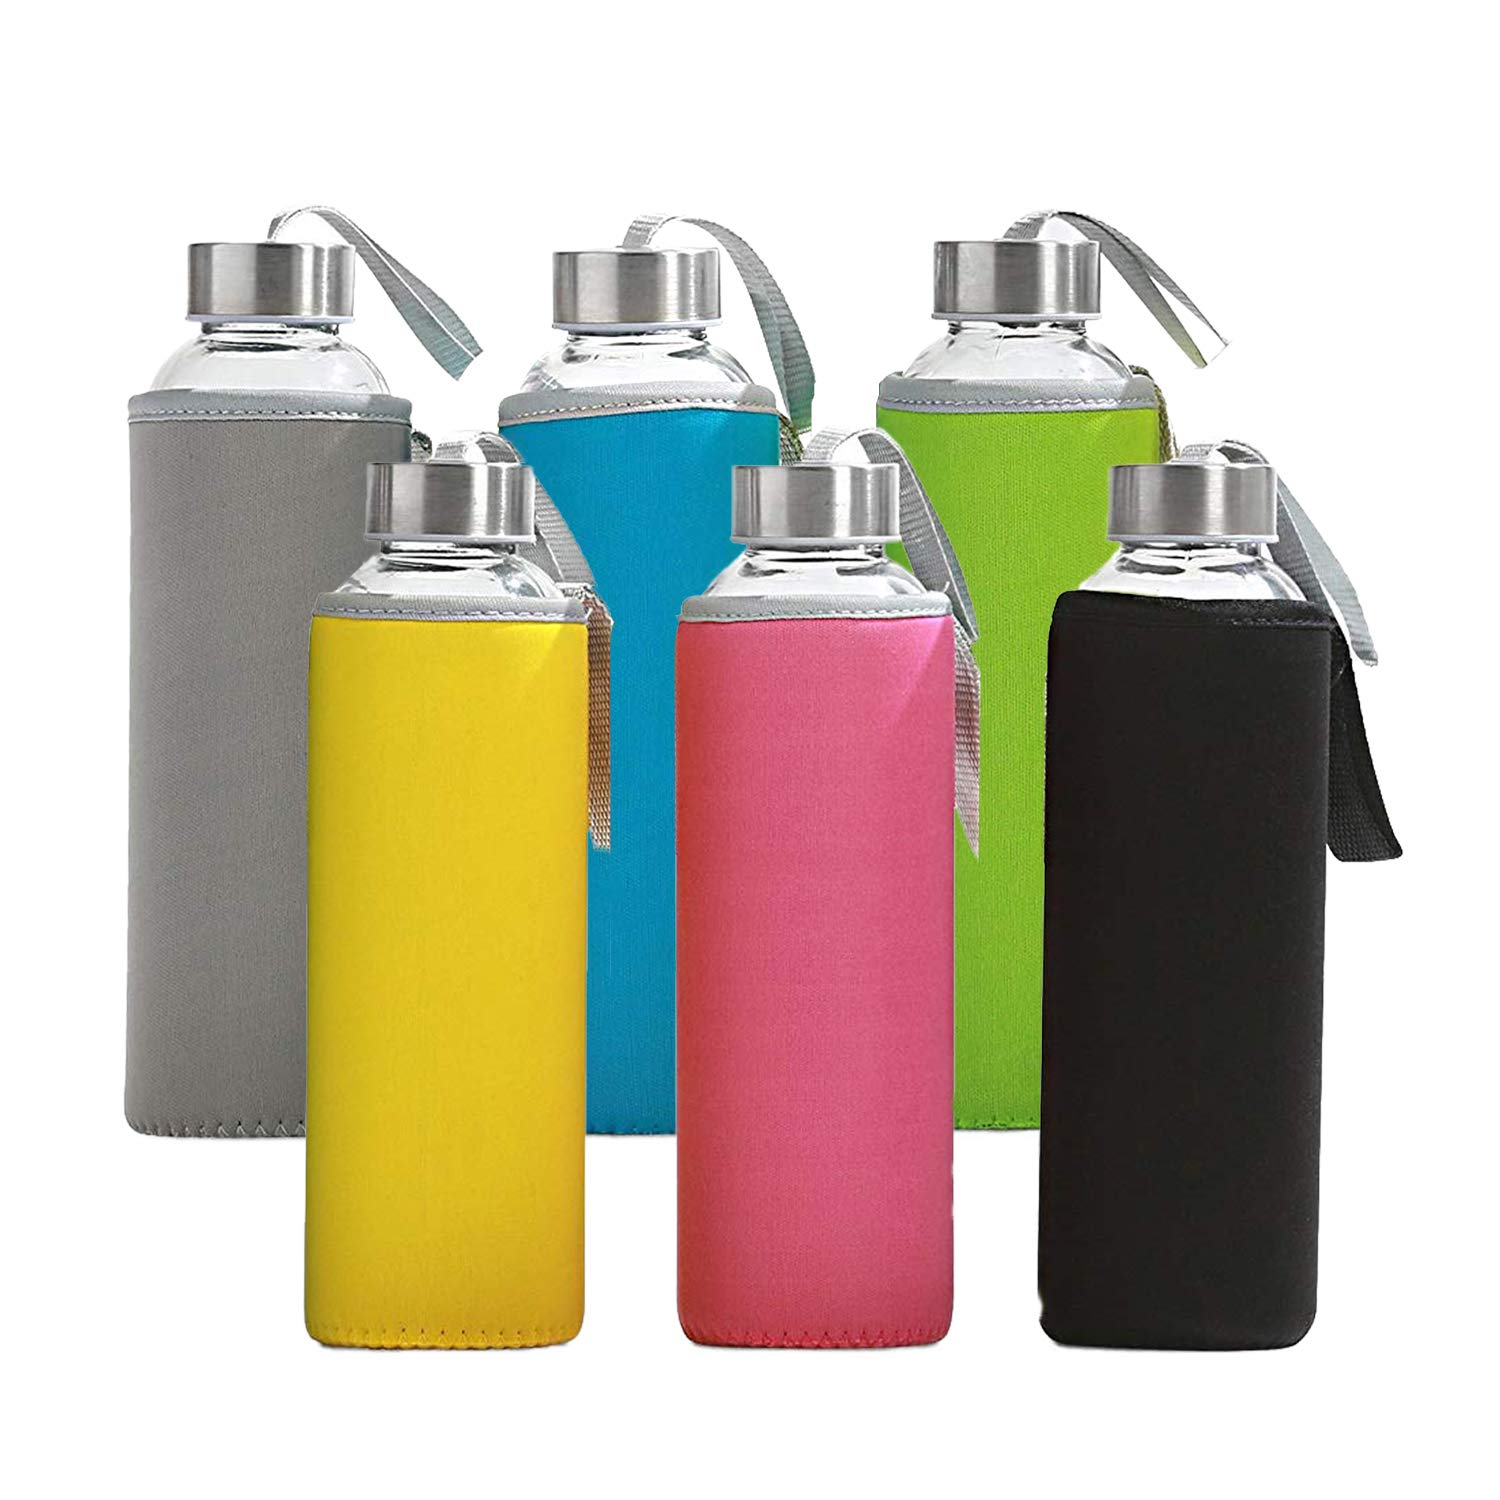 6 Pack - Glass Water Bottles with Multi-Color Neoprene Sleeves, 18 oz Capacity, Kombucha, Smoothies, Juice, Reusable, Back to School, by California Home Goods